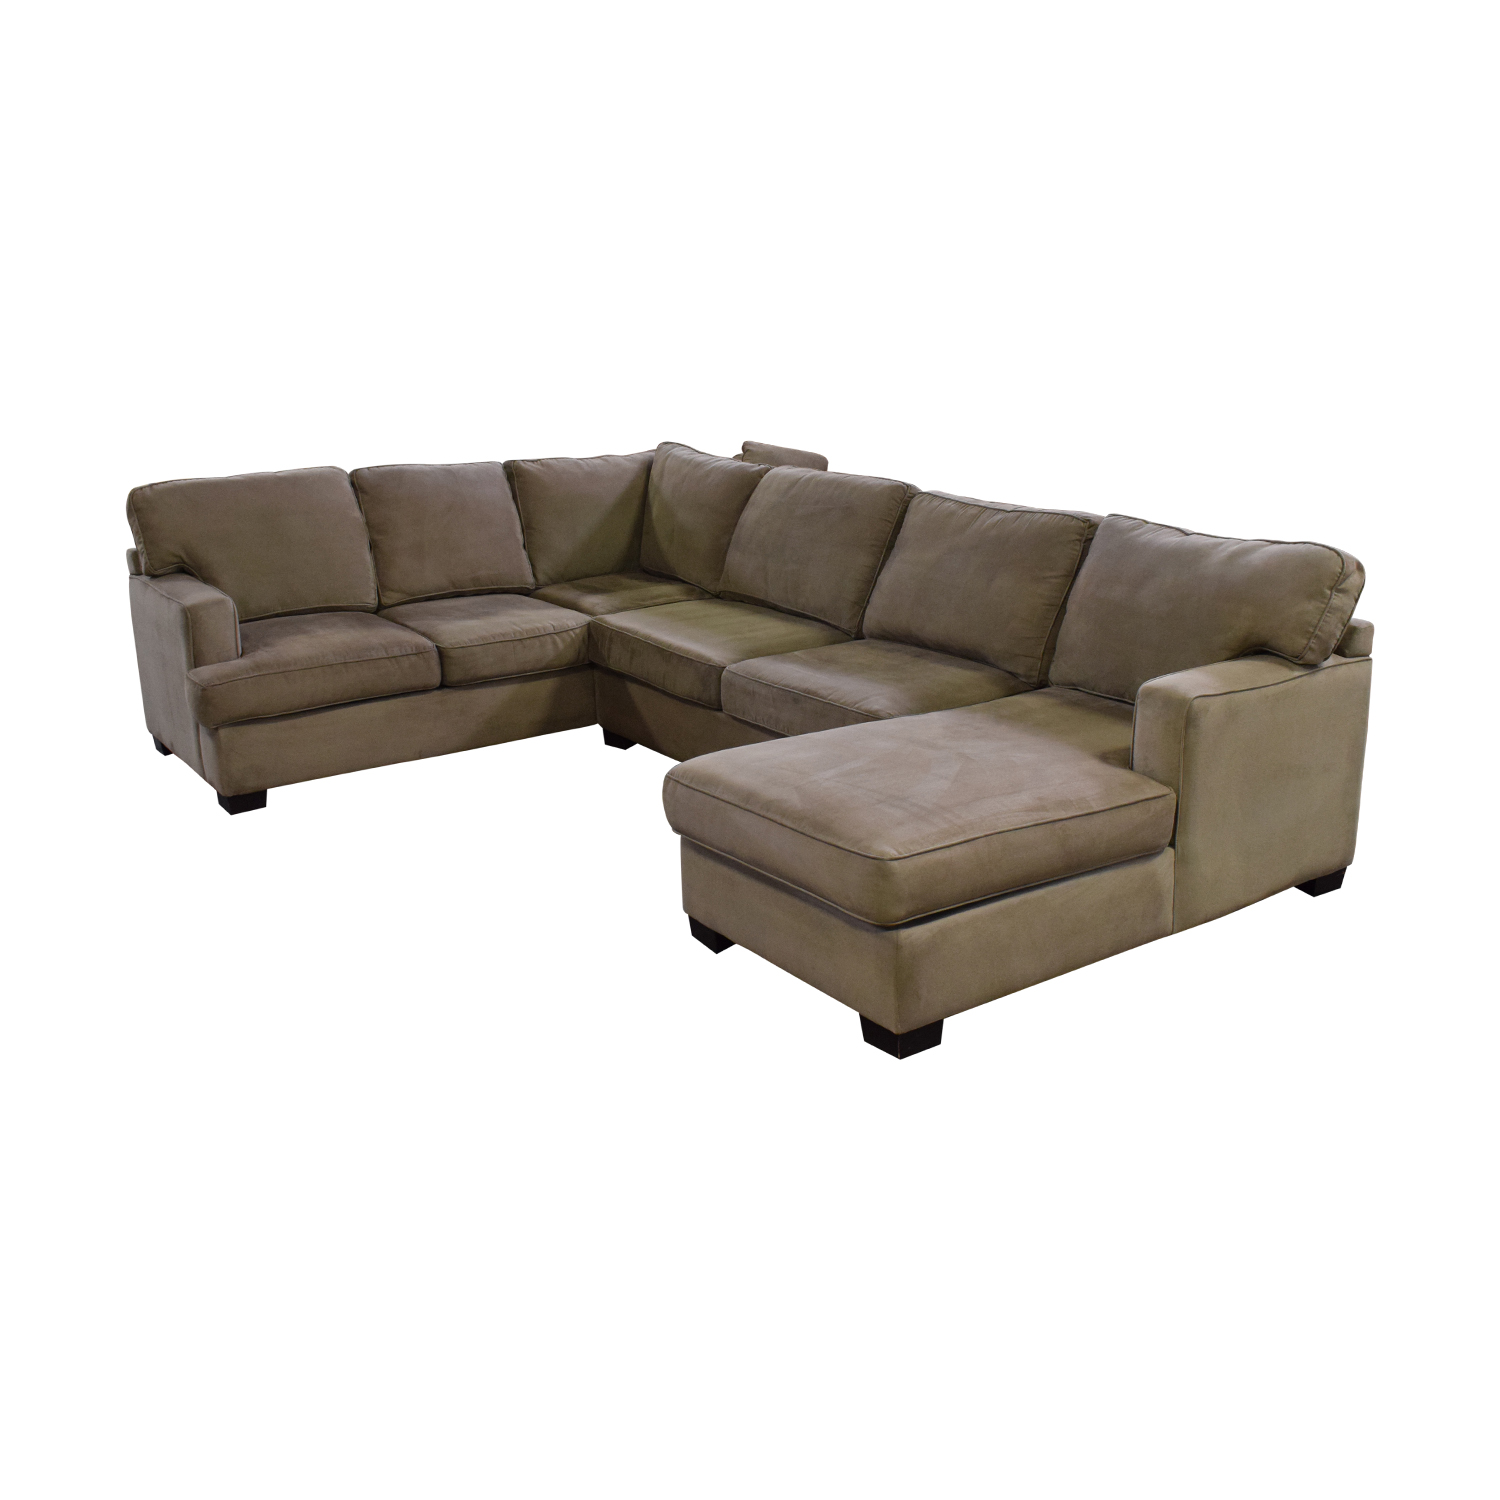 Bloomingdale's Bloomingdale's Sectional Sofa with Chaise coupon